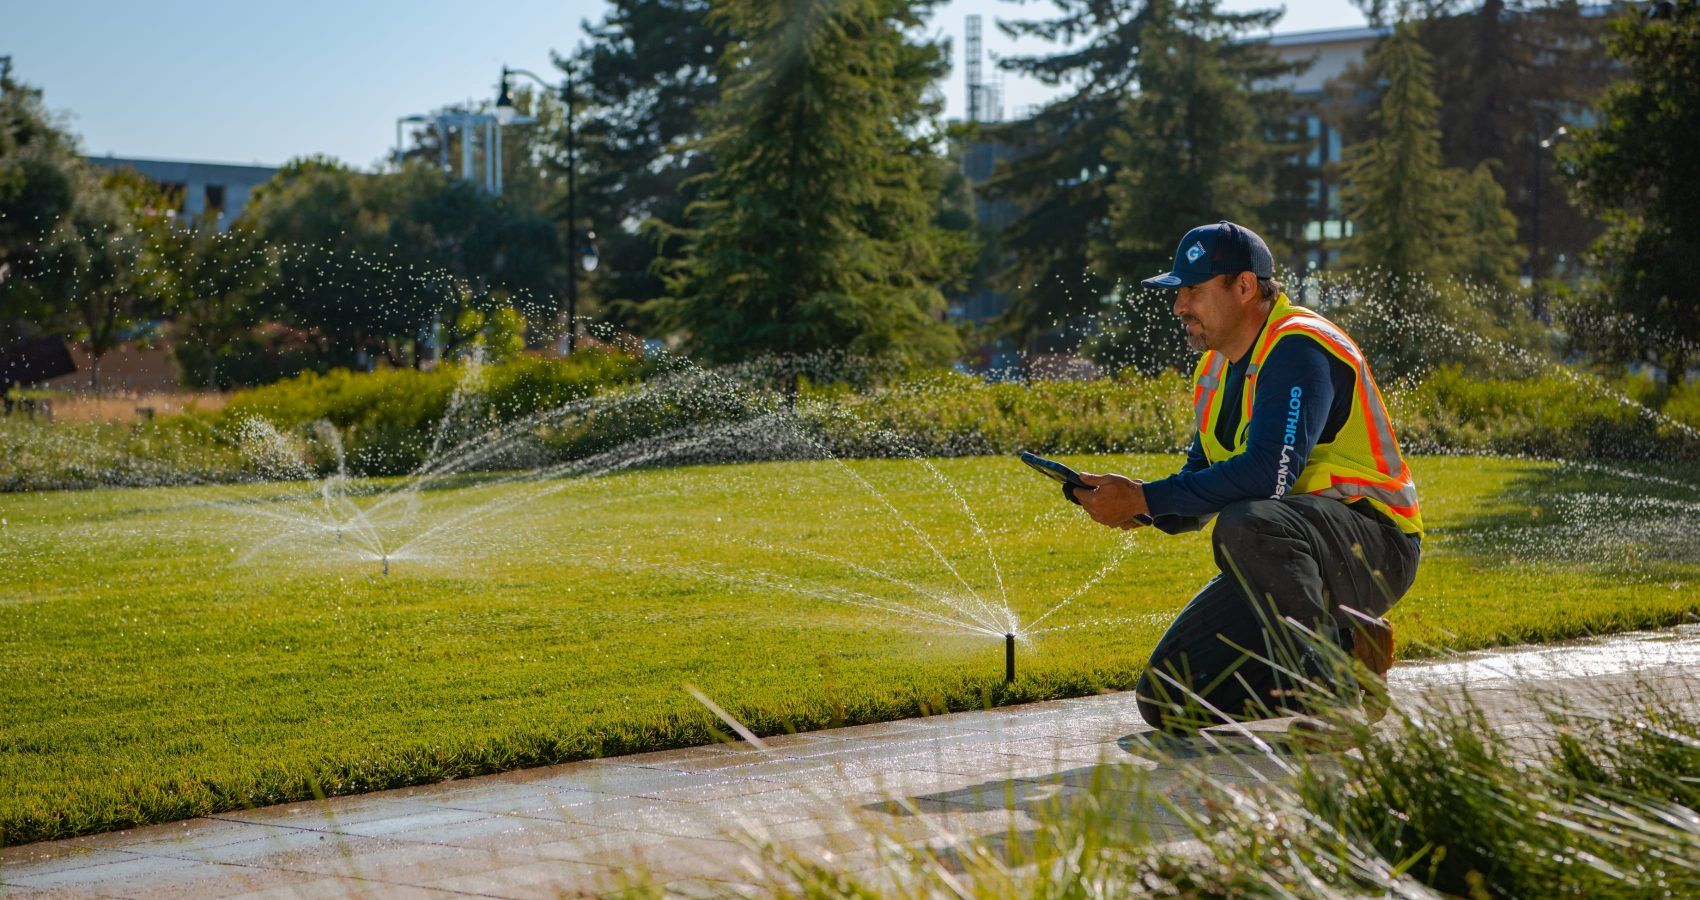 Water and Irrigation Management Services provided by Gothic Landscape.